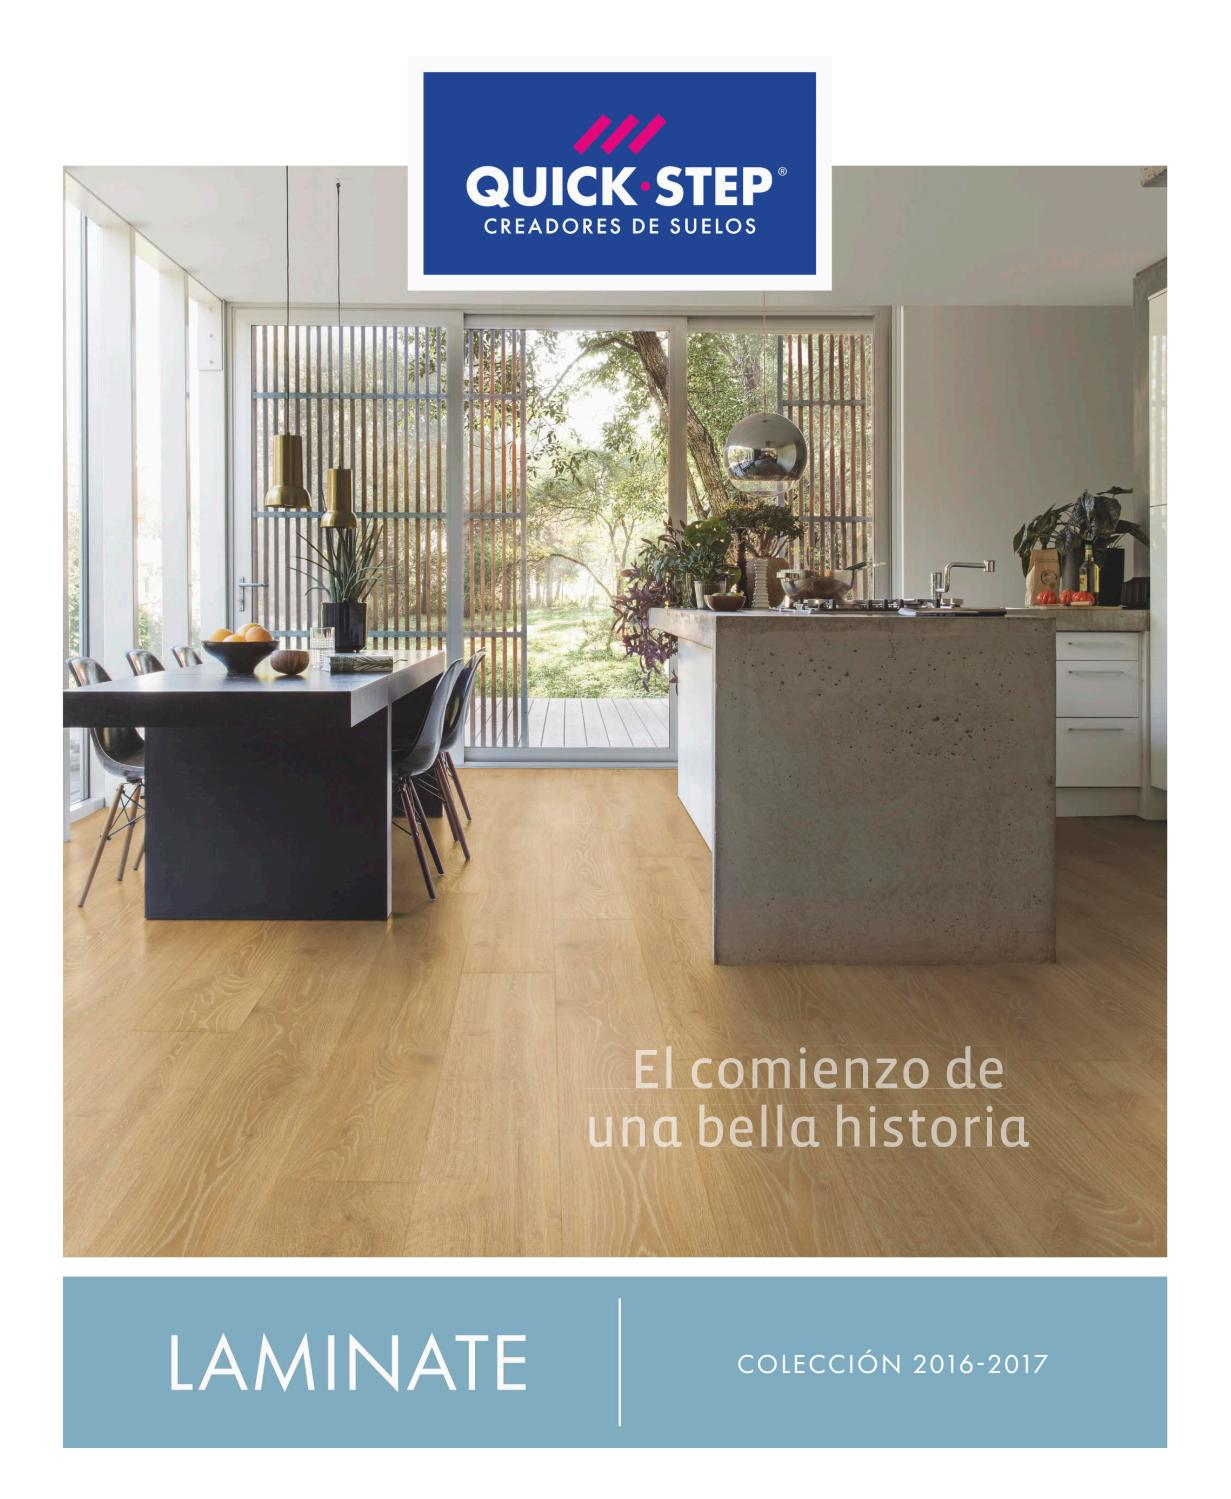 QUICK STEP QUICK STEP CLASSIC 8 mm CAJA 1,596 M2 CLM 1291 Roble Blanqueado Blanco